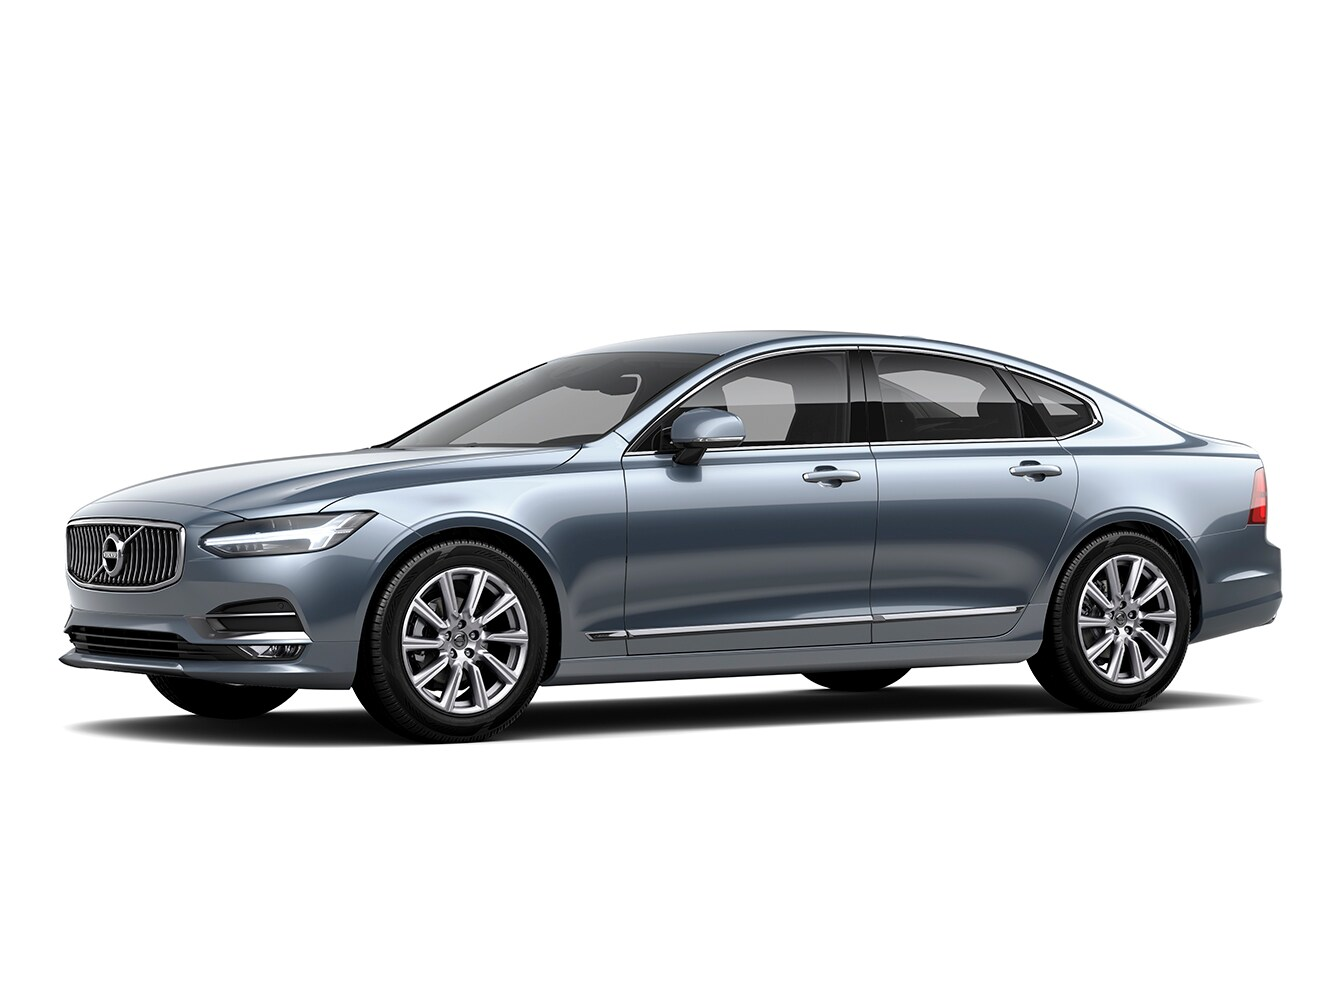 Volvo S90 Inscription paket dodatne opreme